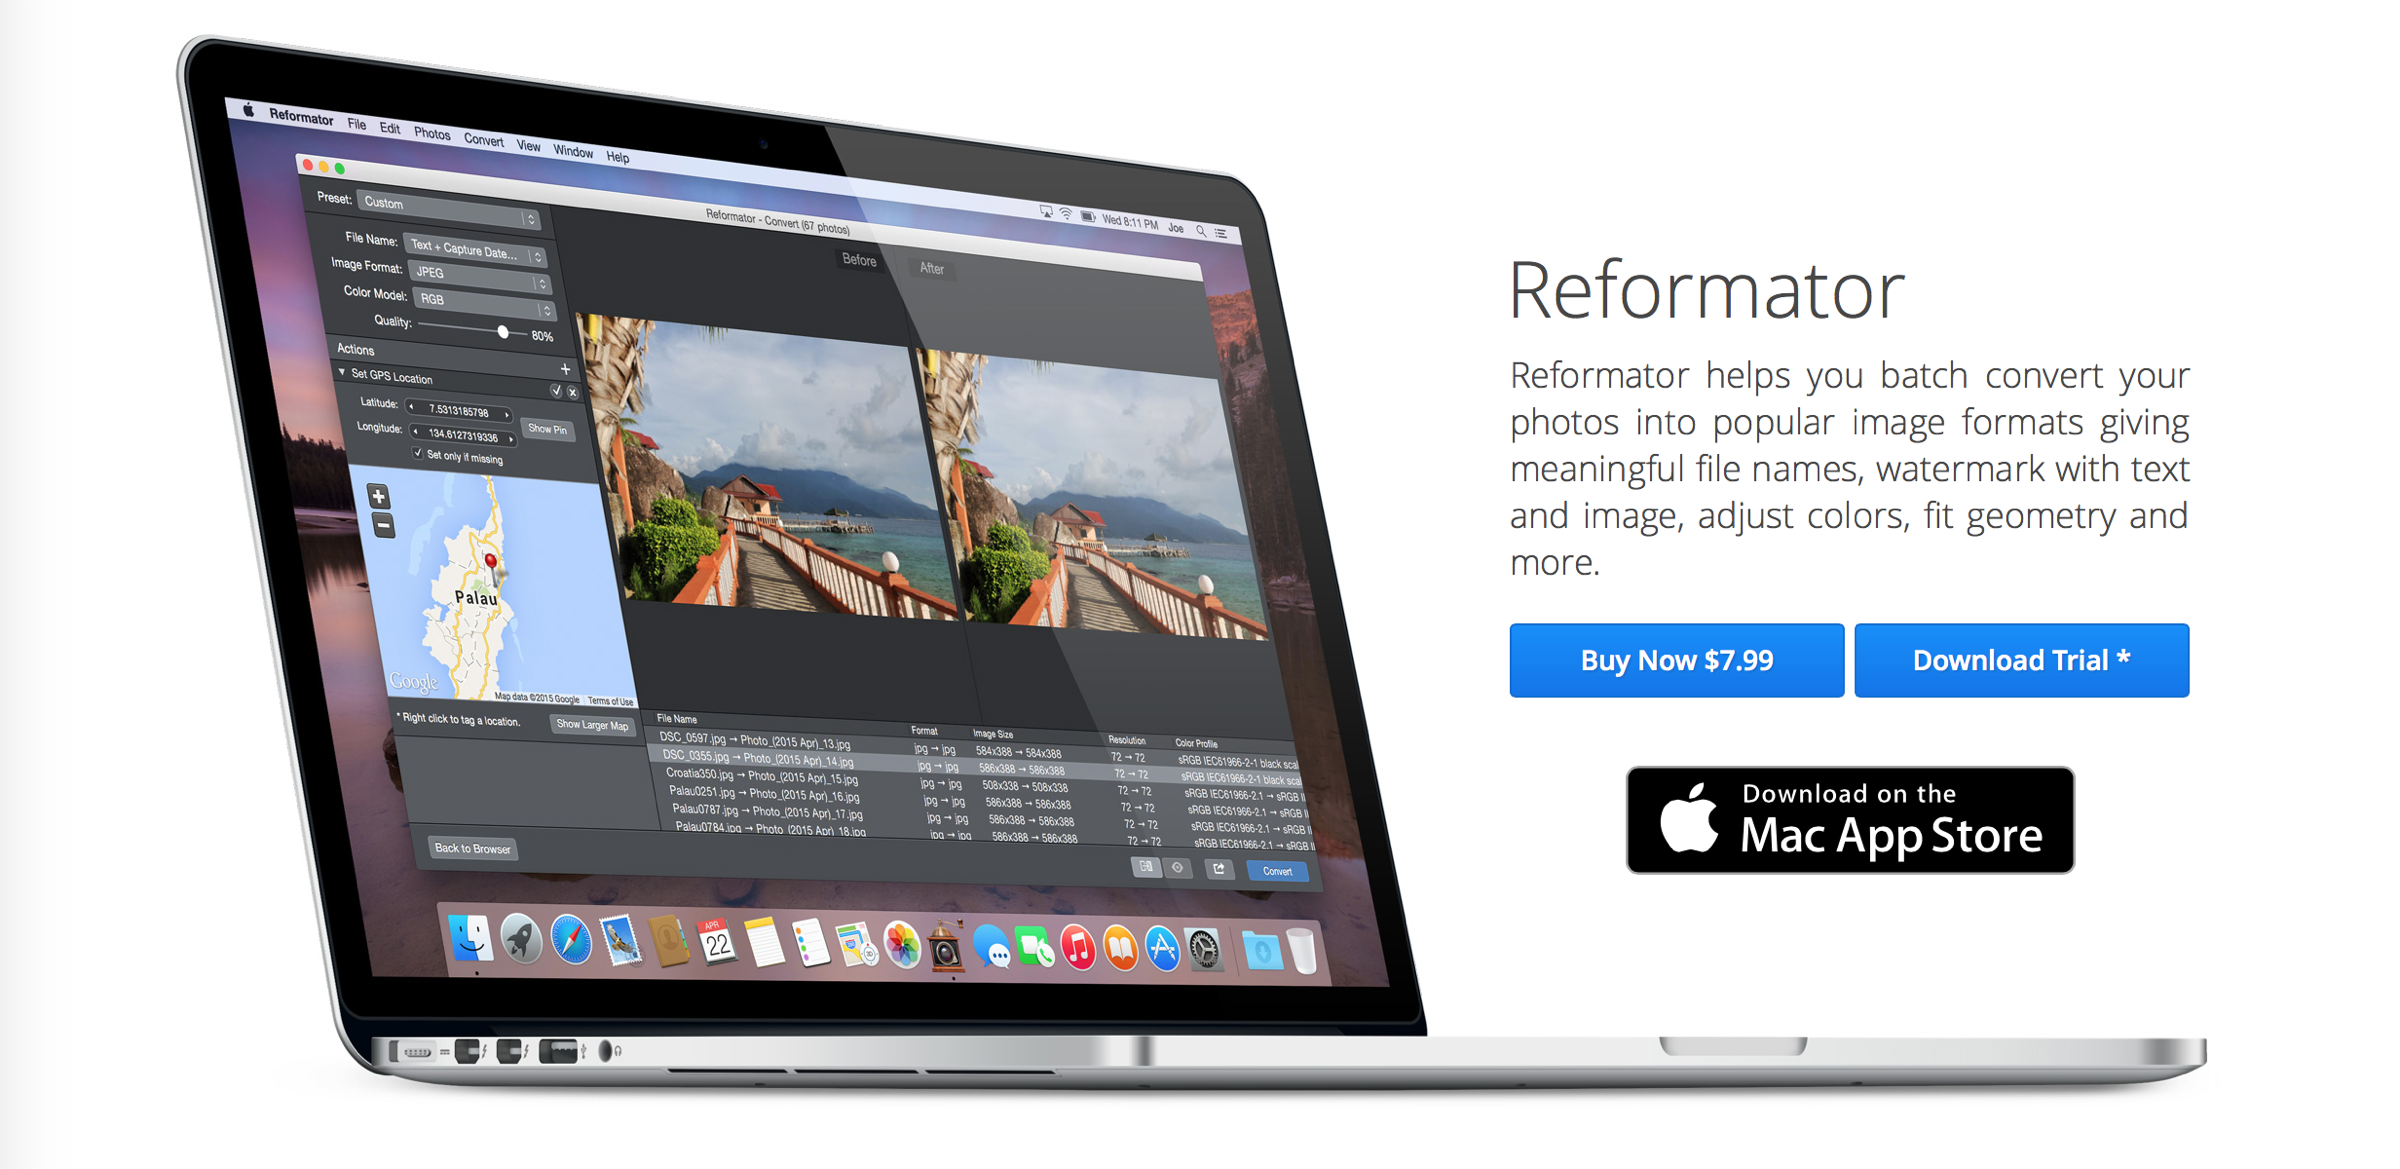 Reformator gets a nice update, makes it easier than ever to edit iPhone-captured photos